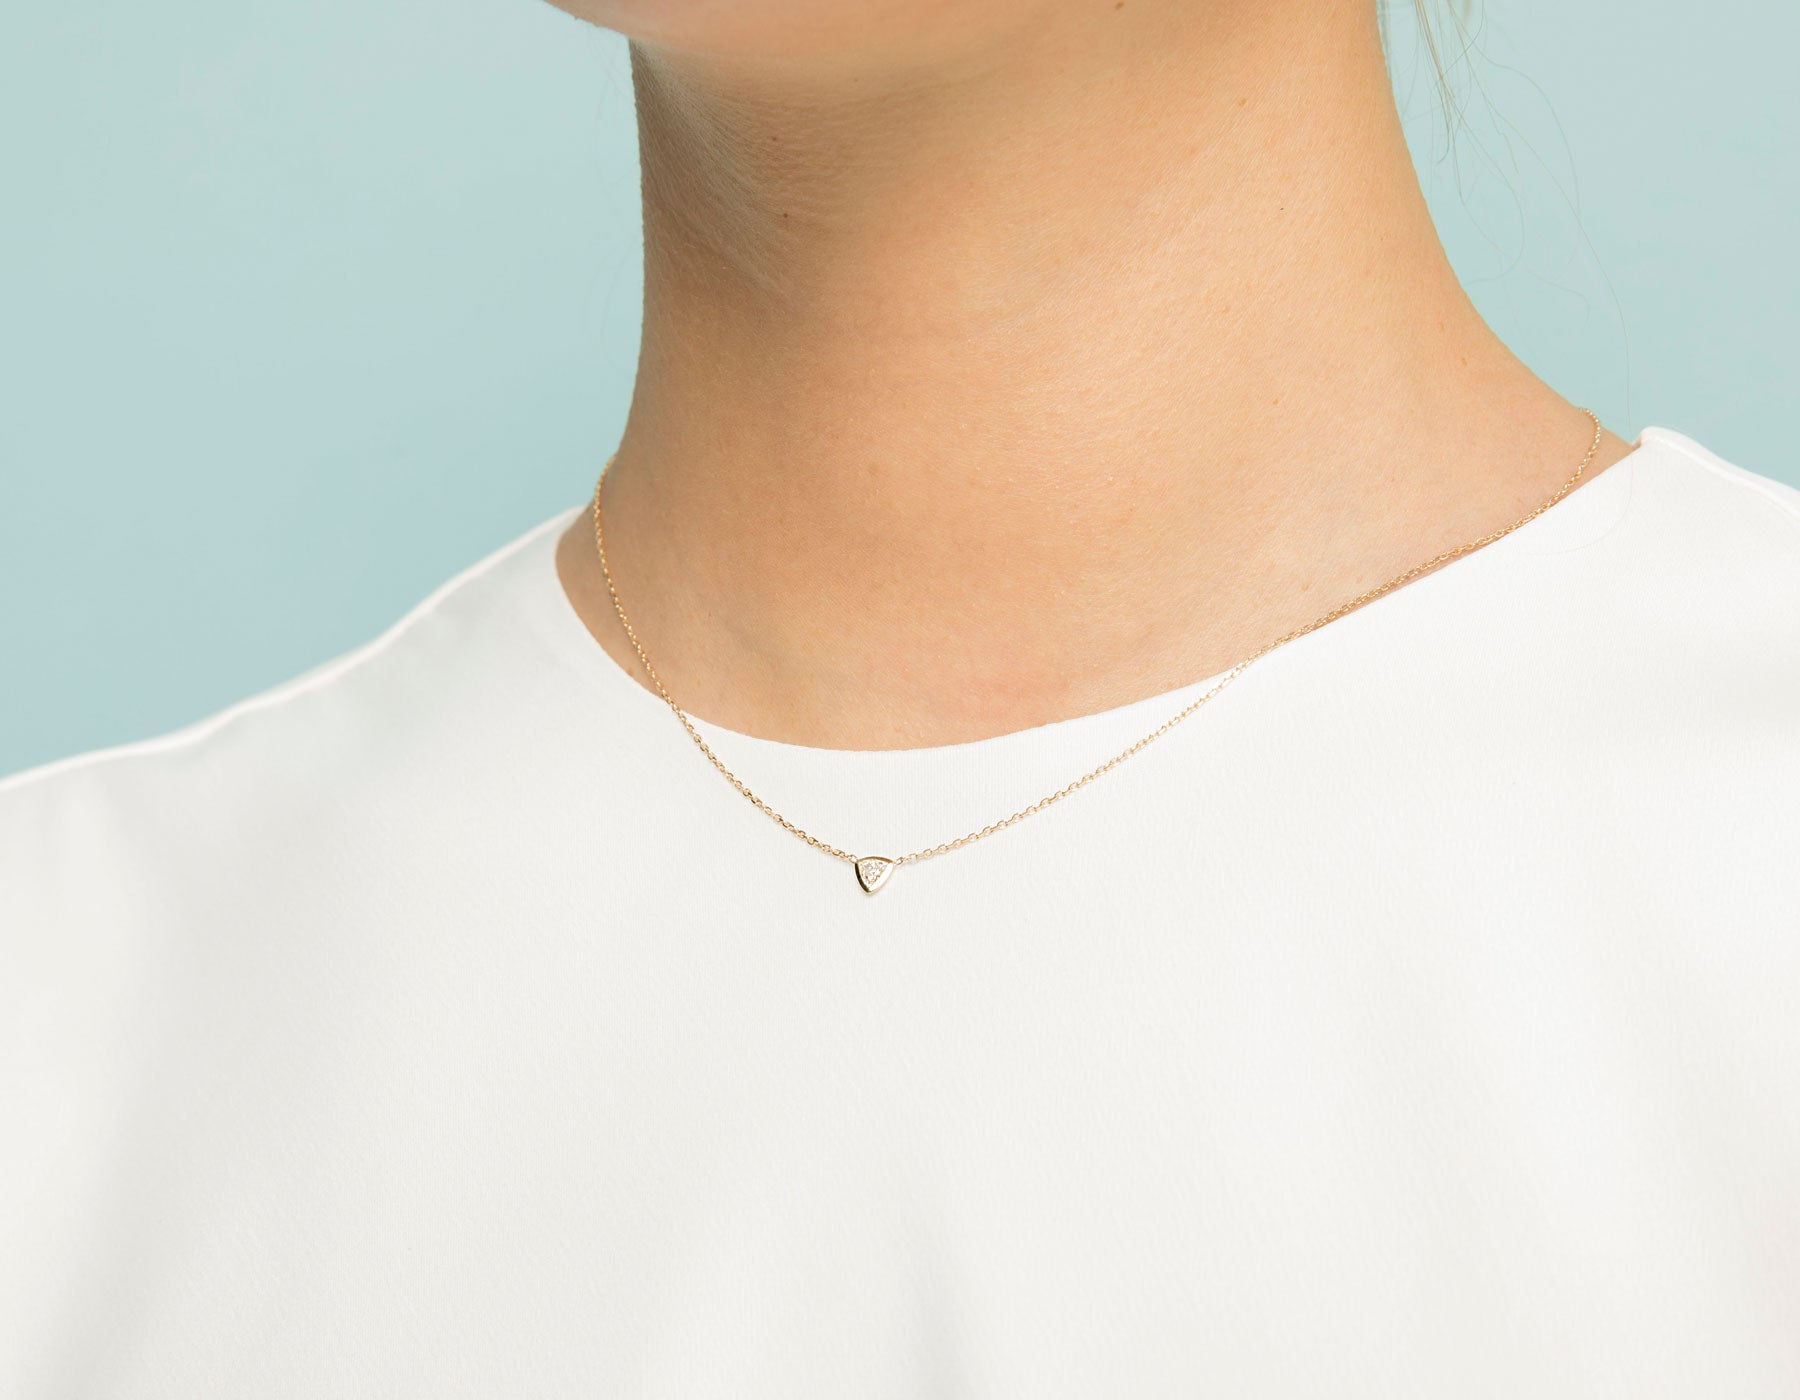 Model wearing dainty minimalist Trillion Diamond Bezel Necklace by Vrai, 14K Rose Gold